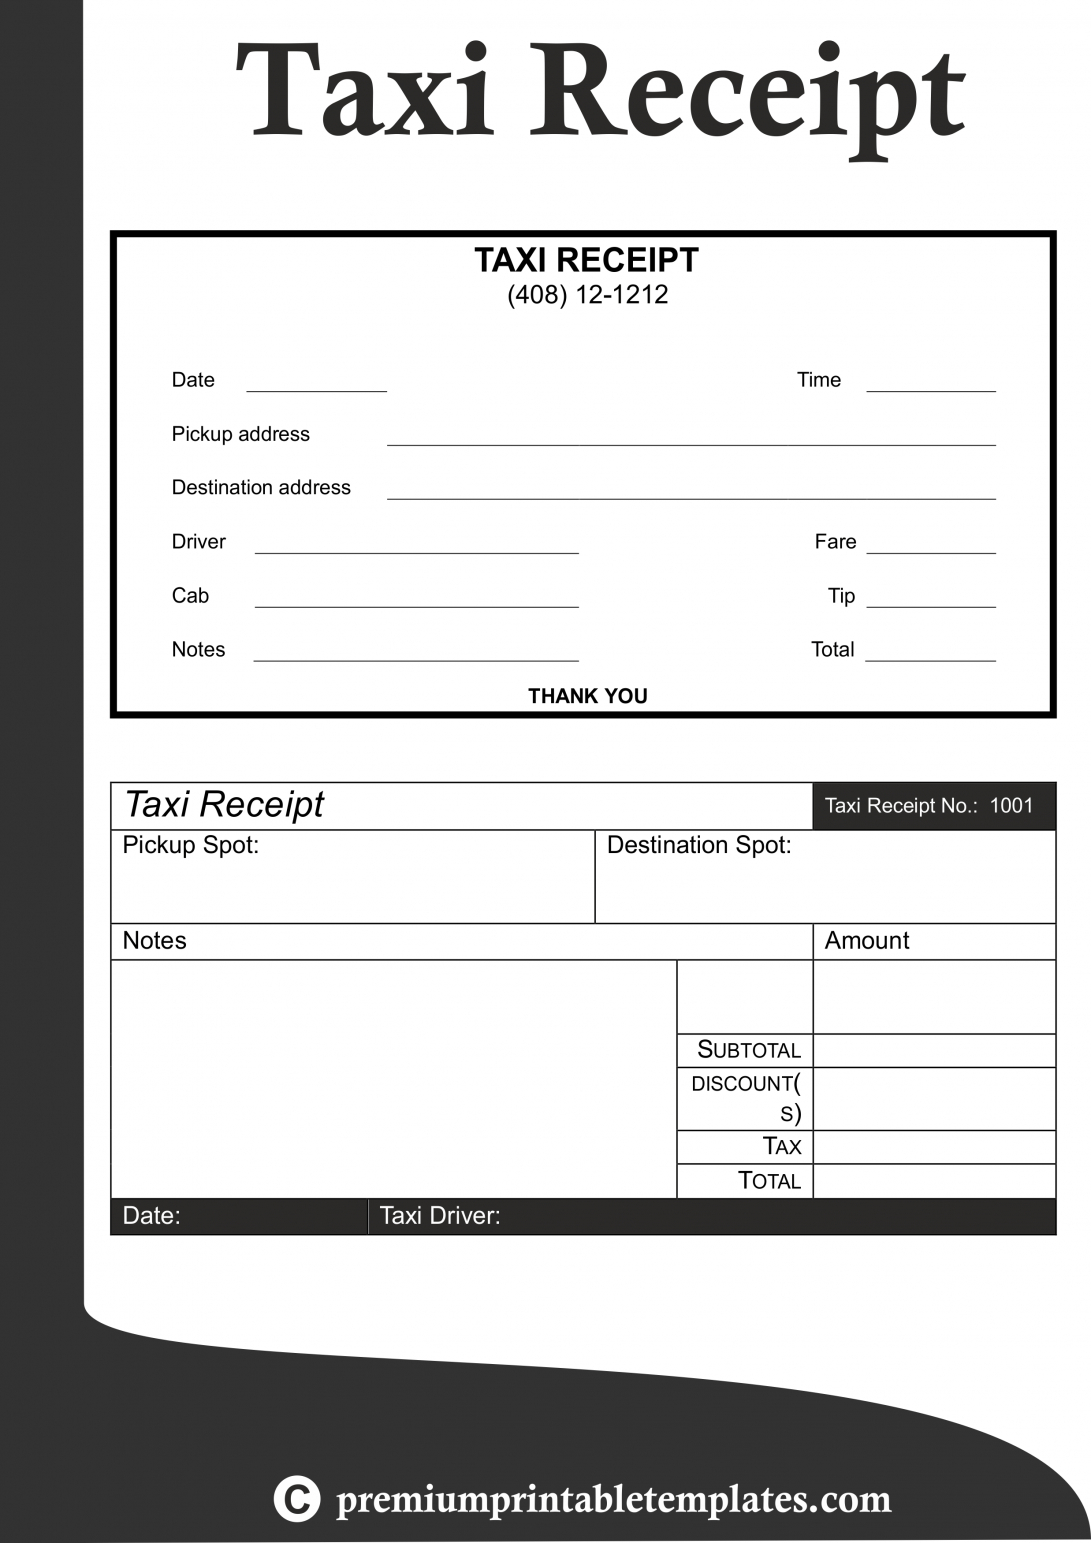 Images Of Receipt Taxi Templates Letter Affidavit Sample An pertaining to Blank Taxi Receipt Template